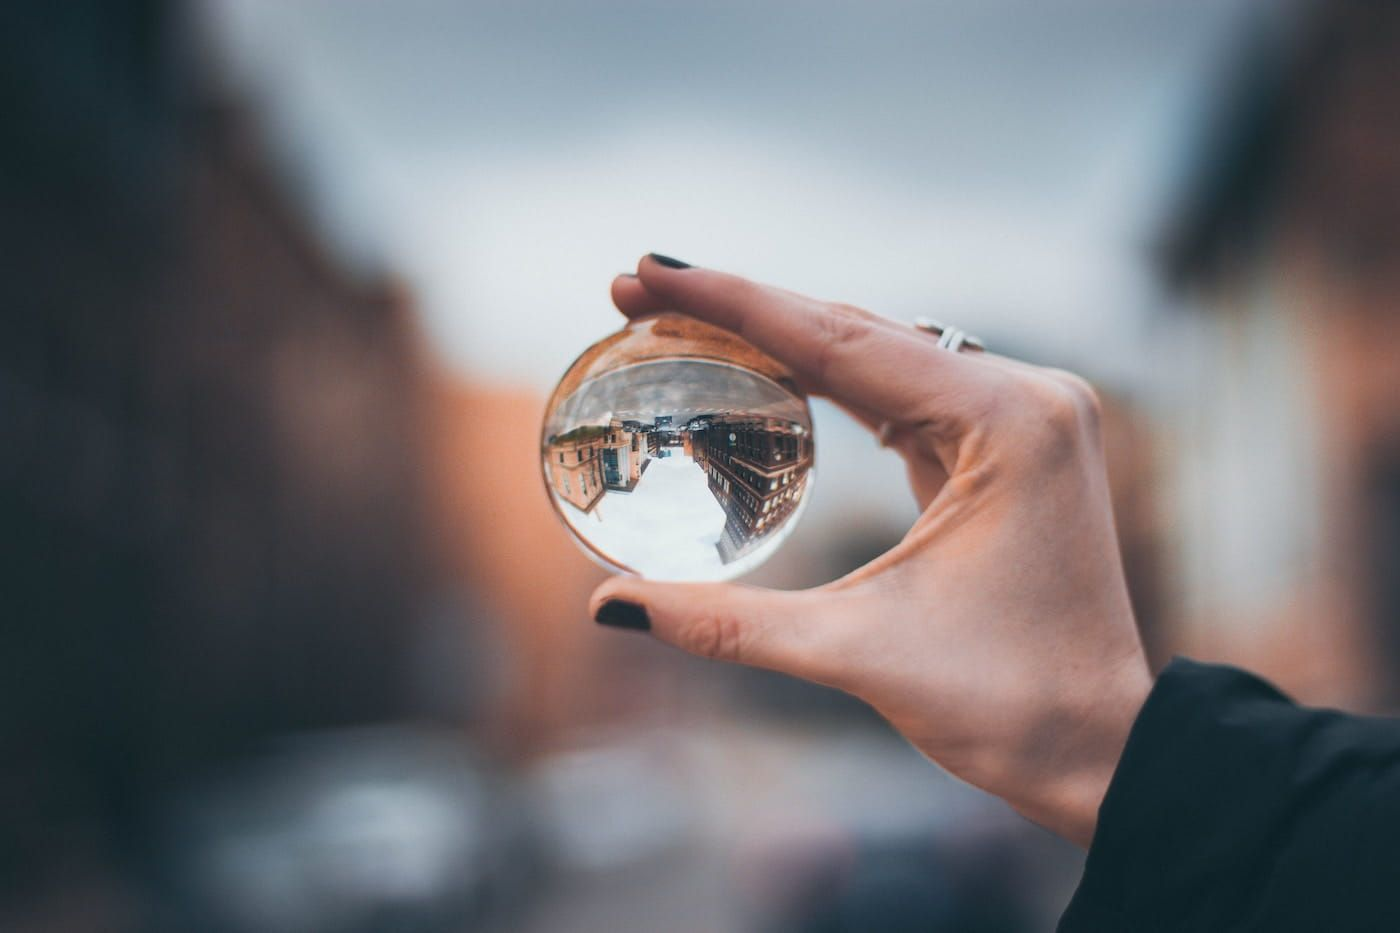 Changing our perspective to make life more pleasant